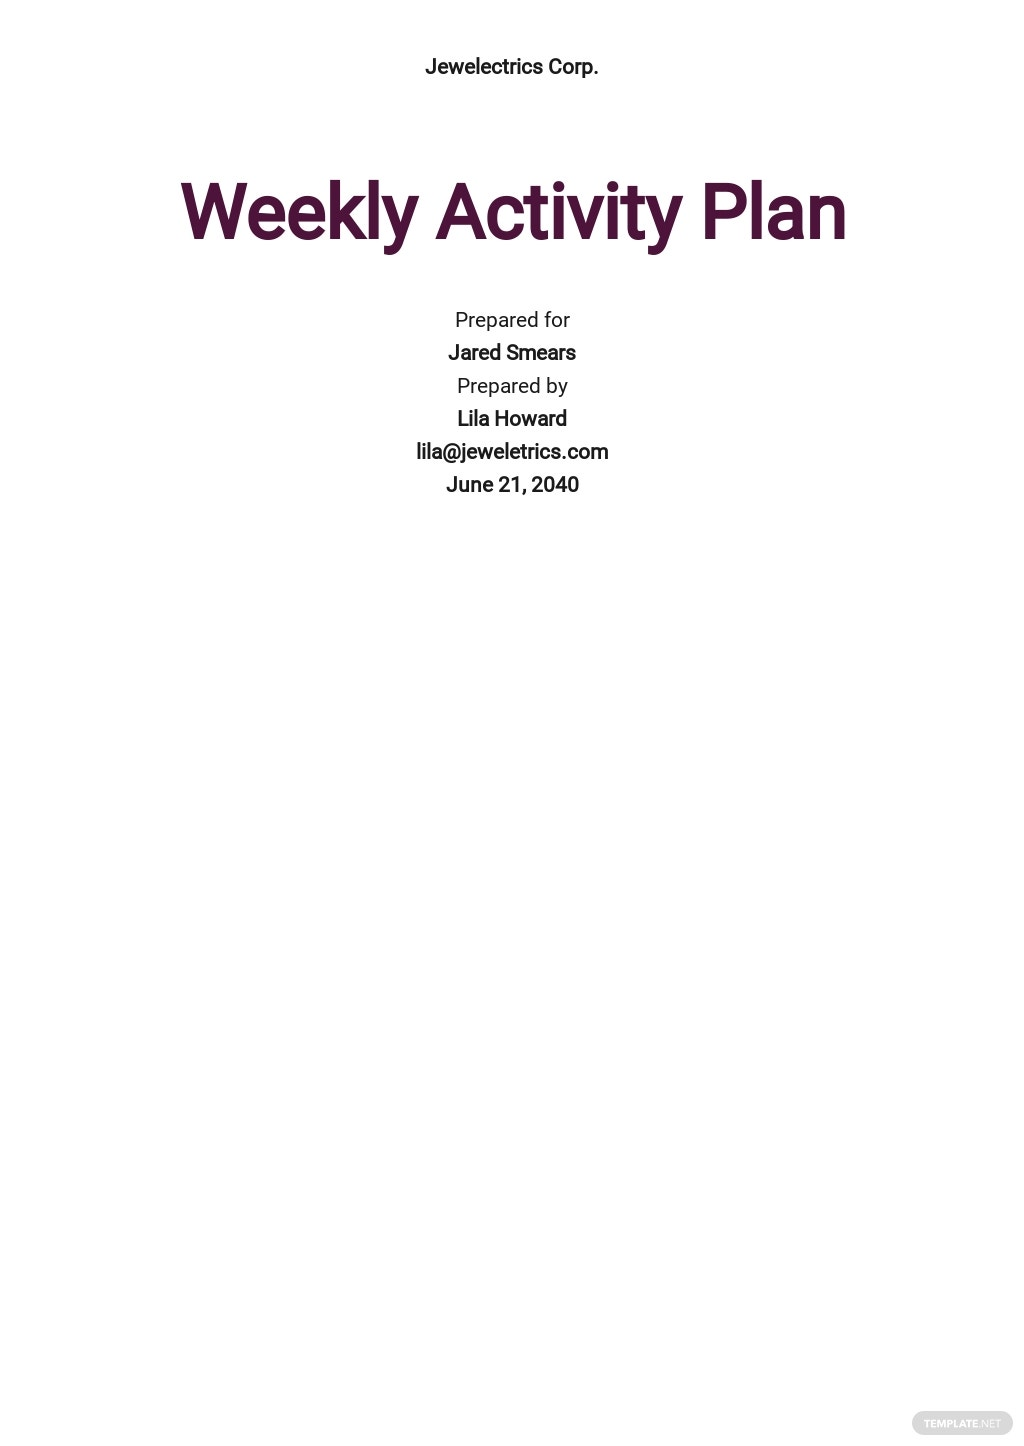 Weekly Activity Plan Template